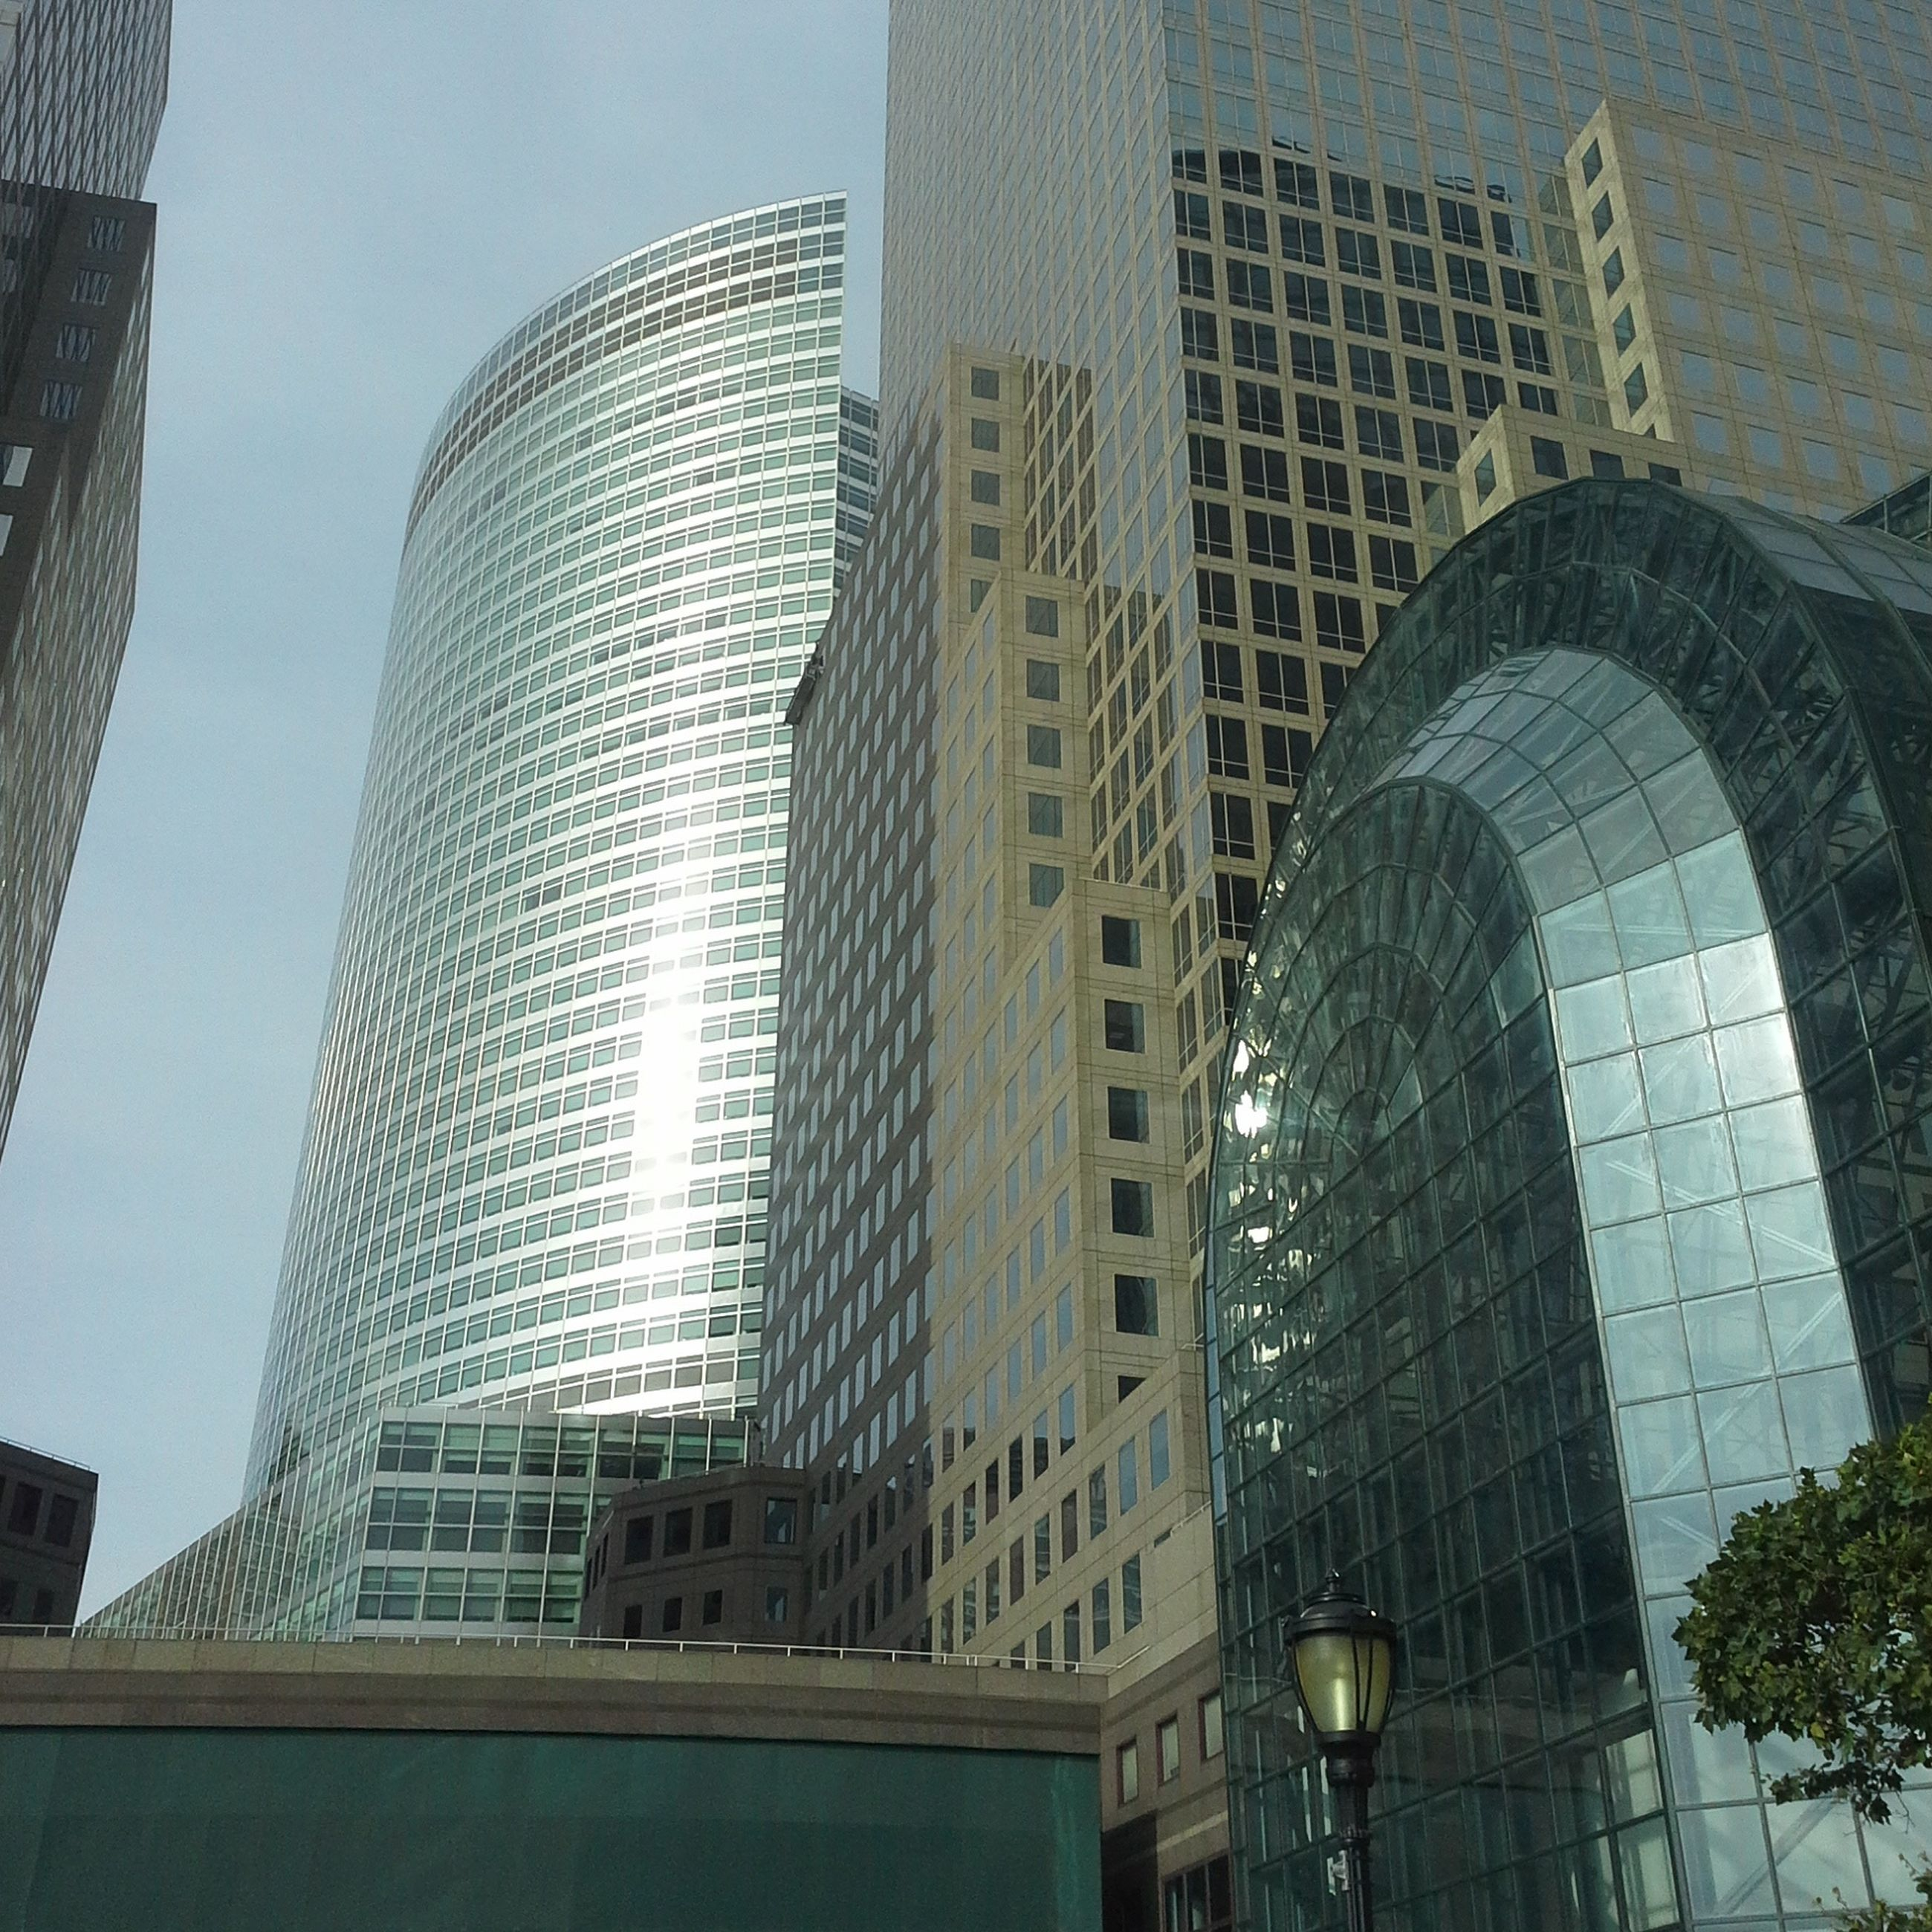 architecture, built structure, building exterior, modern, city, skyscraper, office building, low angle view, tall - high, tower, glass - material, building, capital cities, sky, reflection, tree, city life, clear sky, travel destinations, day